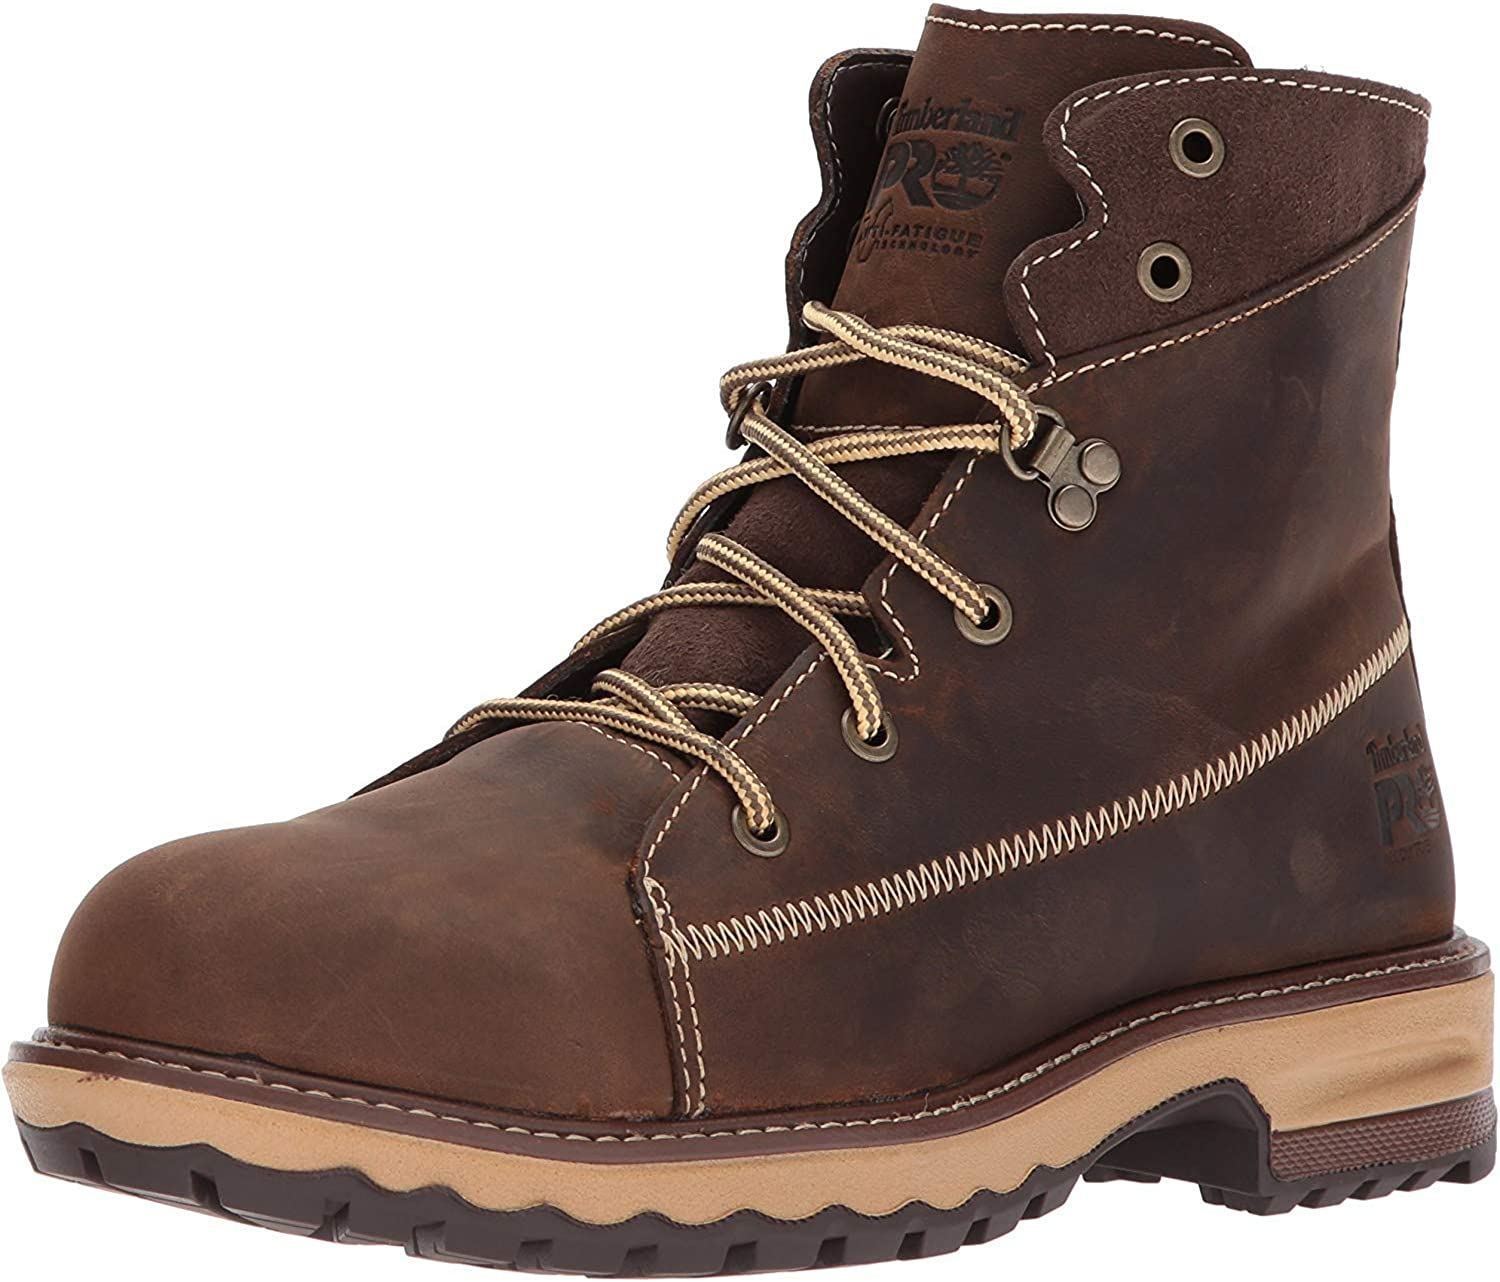 "Timberland PRO Women's Hightower 6"" Alloy Toe Industrial & Construction Shoe"